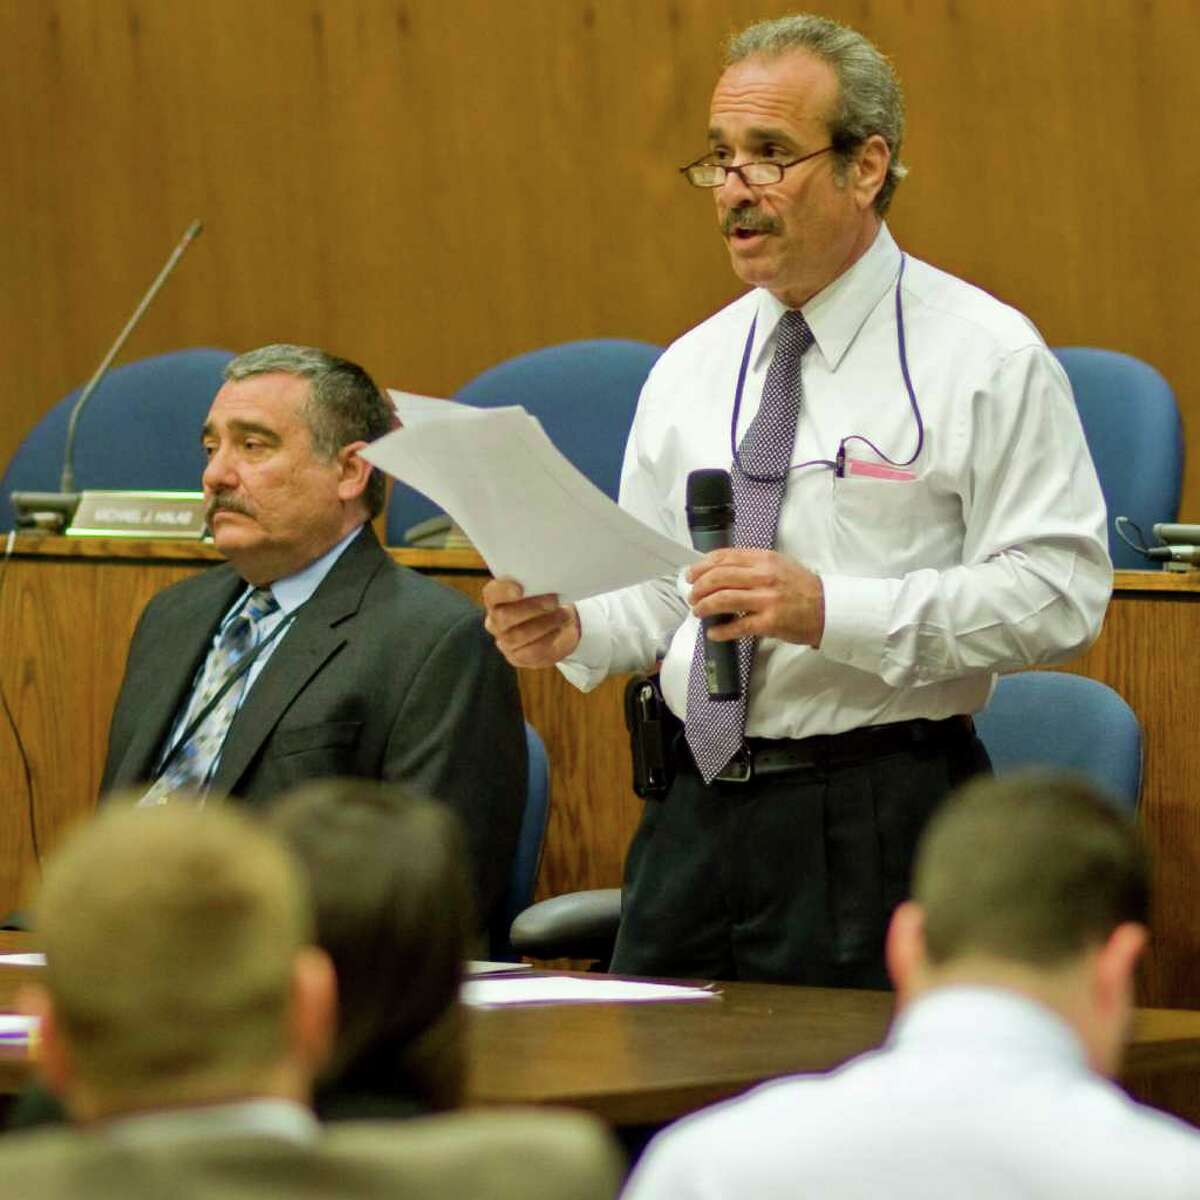 Danbury Postmaster Philip Gioia, left, and Manager for Postal Operations, Guy Polacco address the community meeting at City Hall regarding the potential closure of the Main Street Post Office. Wednesday, May 4, 2011